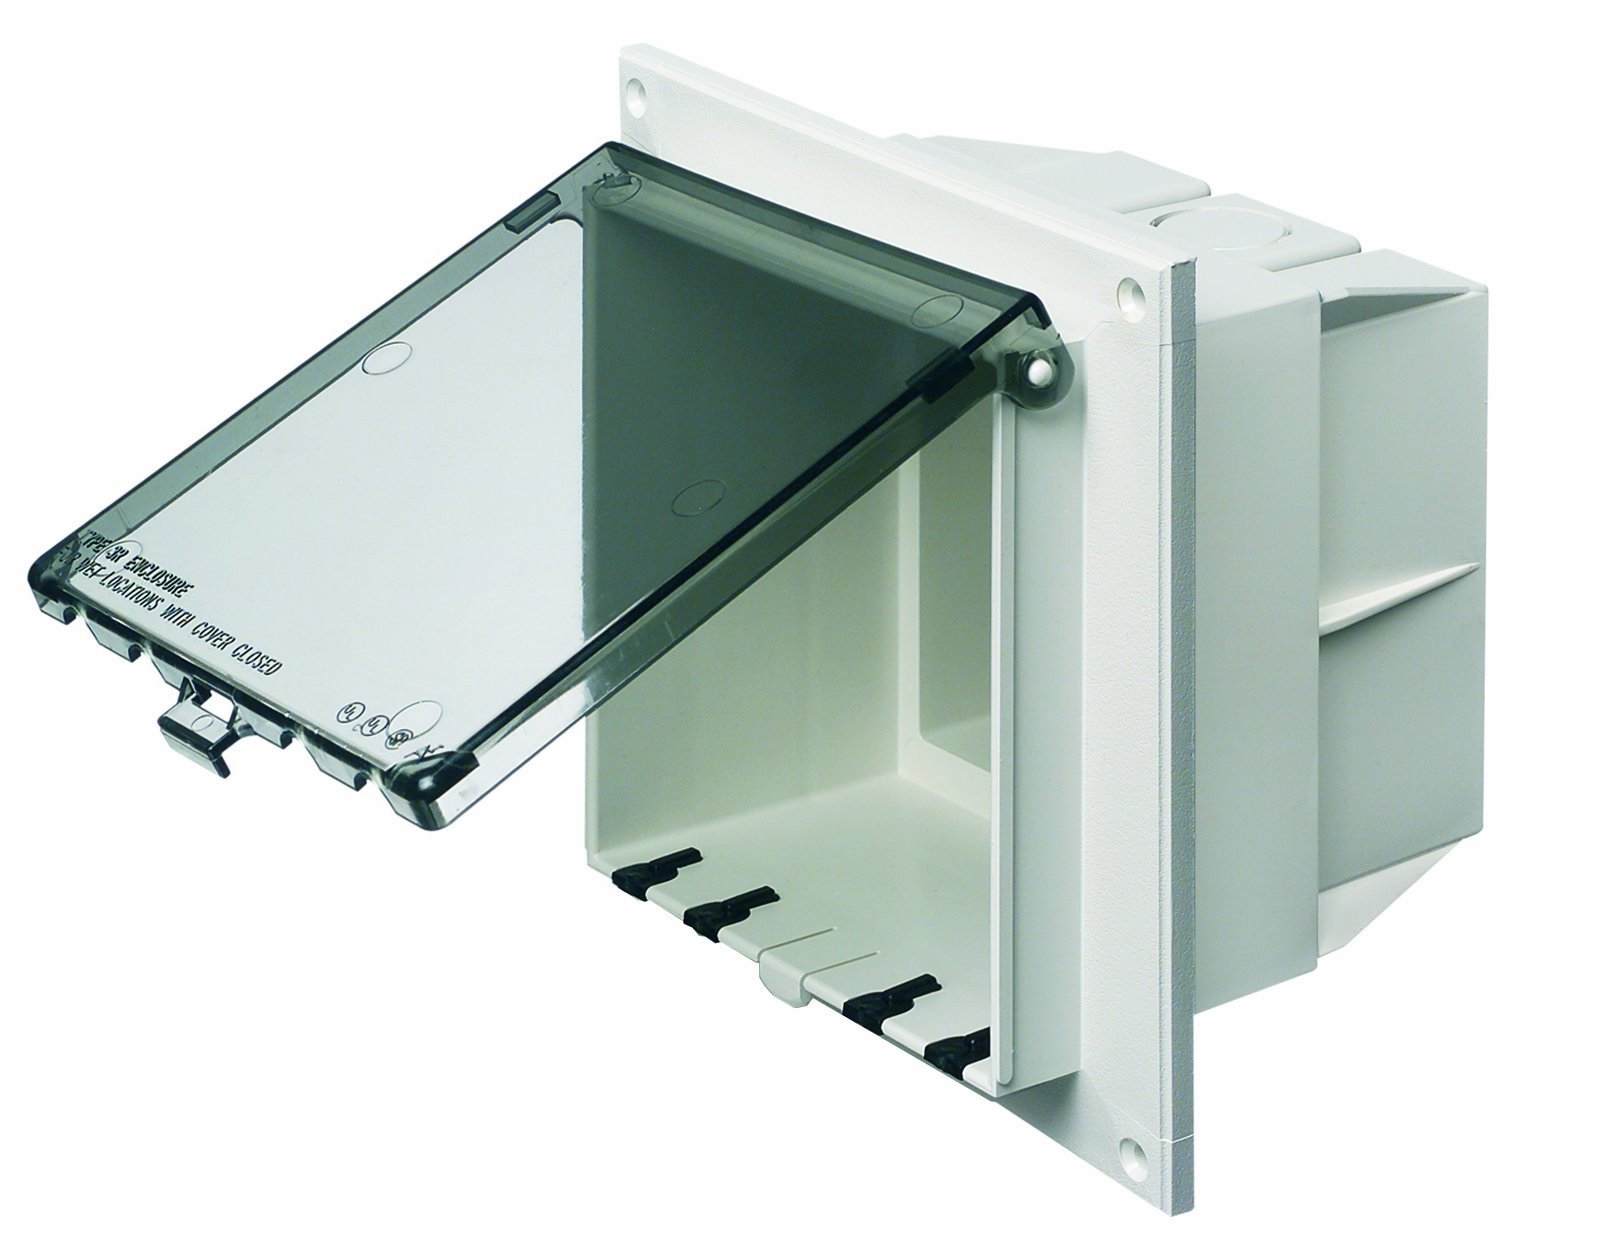 Arlington DBVR2C-1 Low Profile IN BOX Electrical Box with Weatherproof Cover for Flat Surfaces, 2-Gang, Vertical, Clear by Arlington Industries (Image #1)